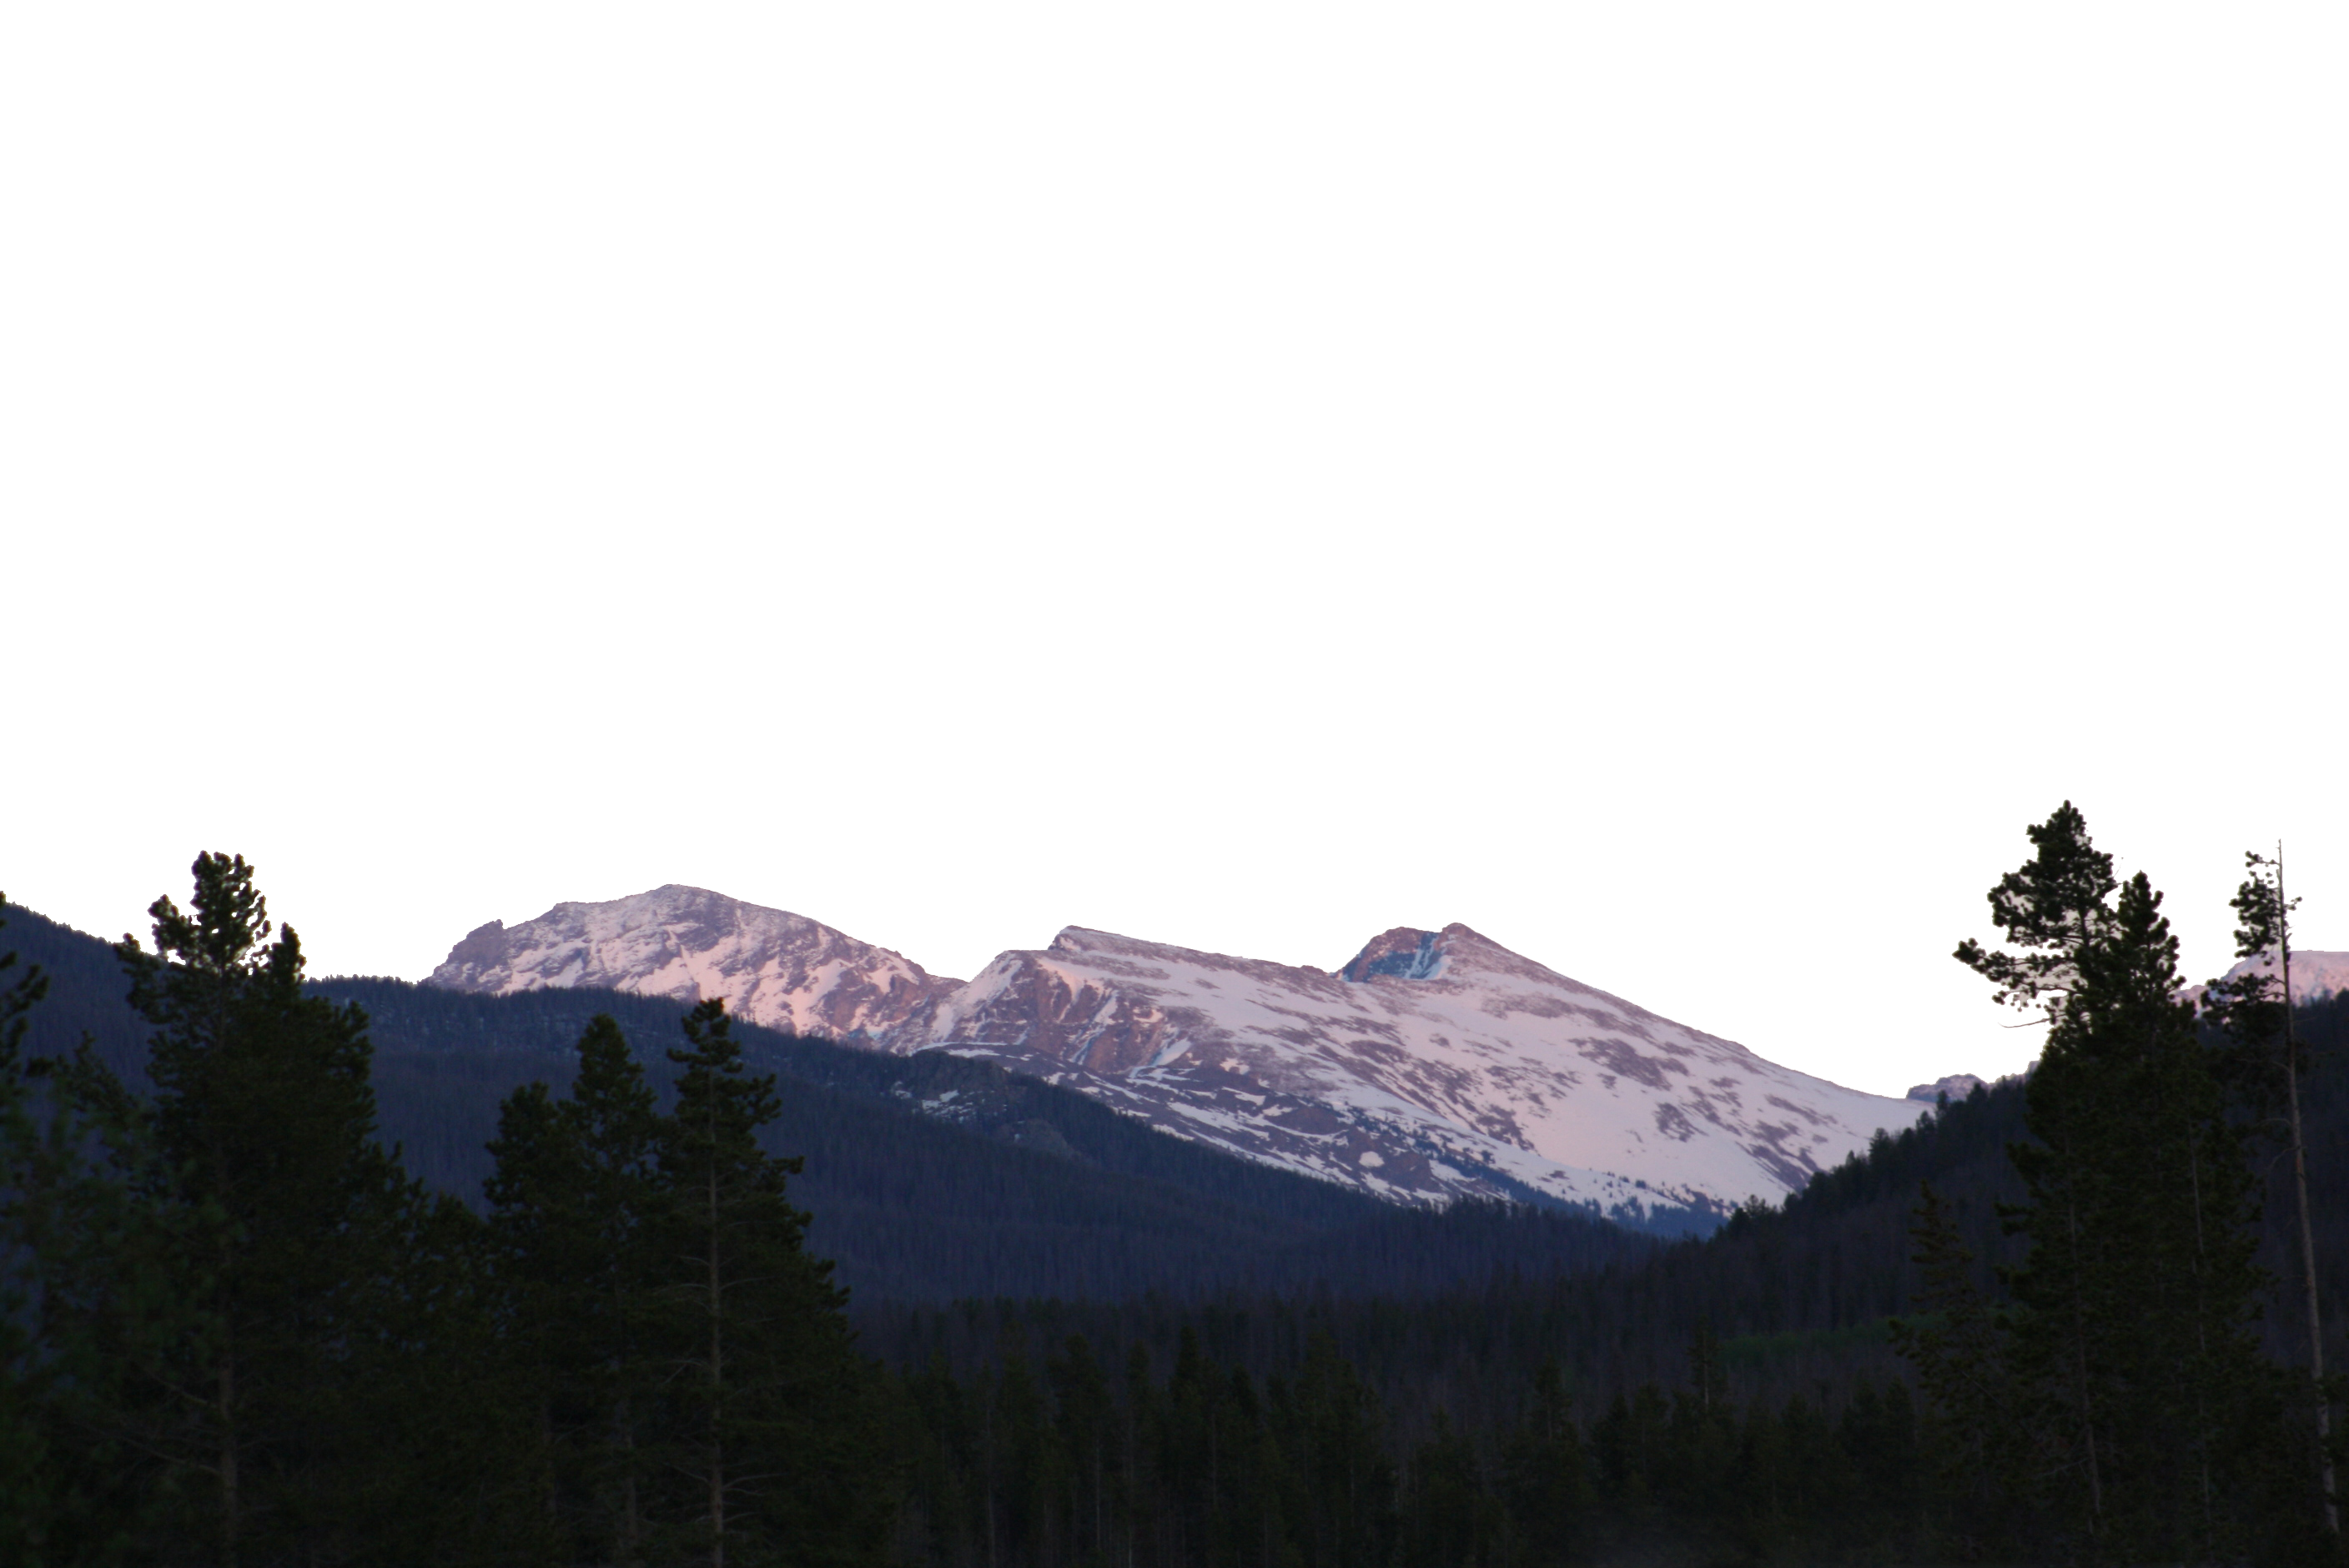 Hill clipart mountain skiing. Geography landform png transparent